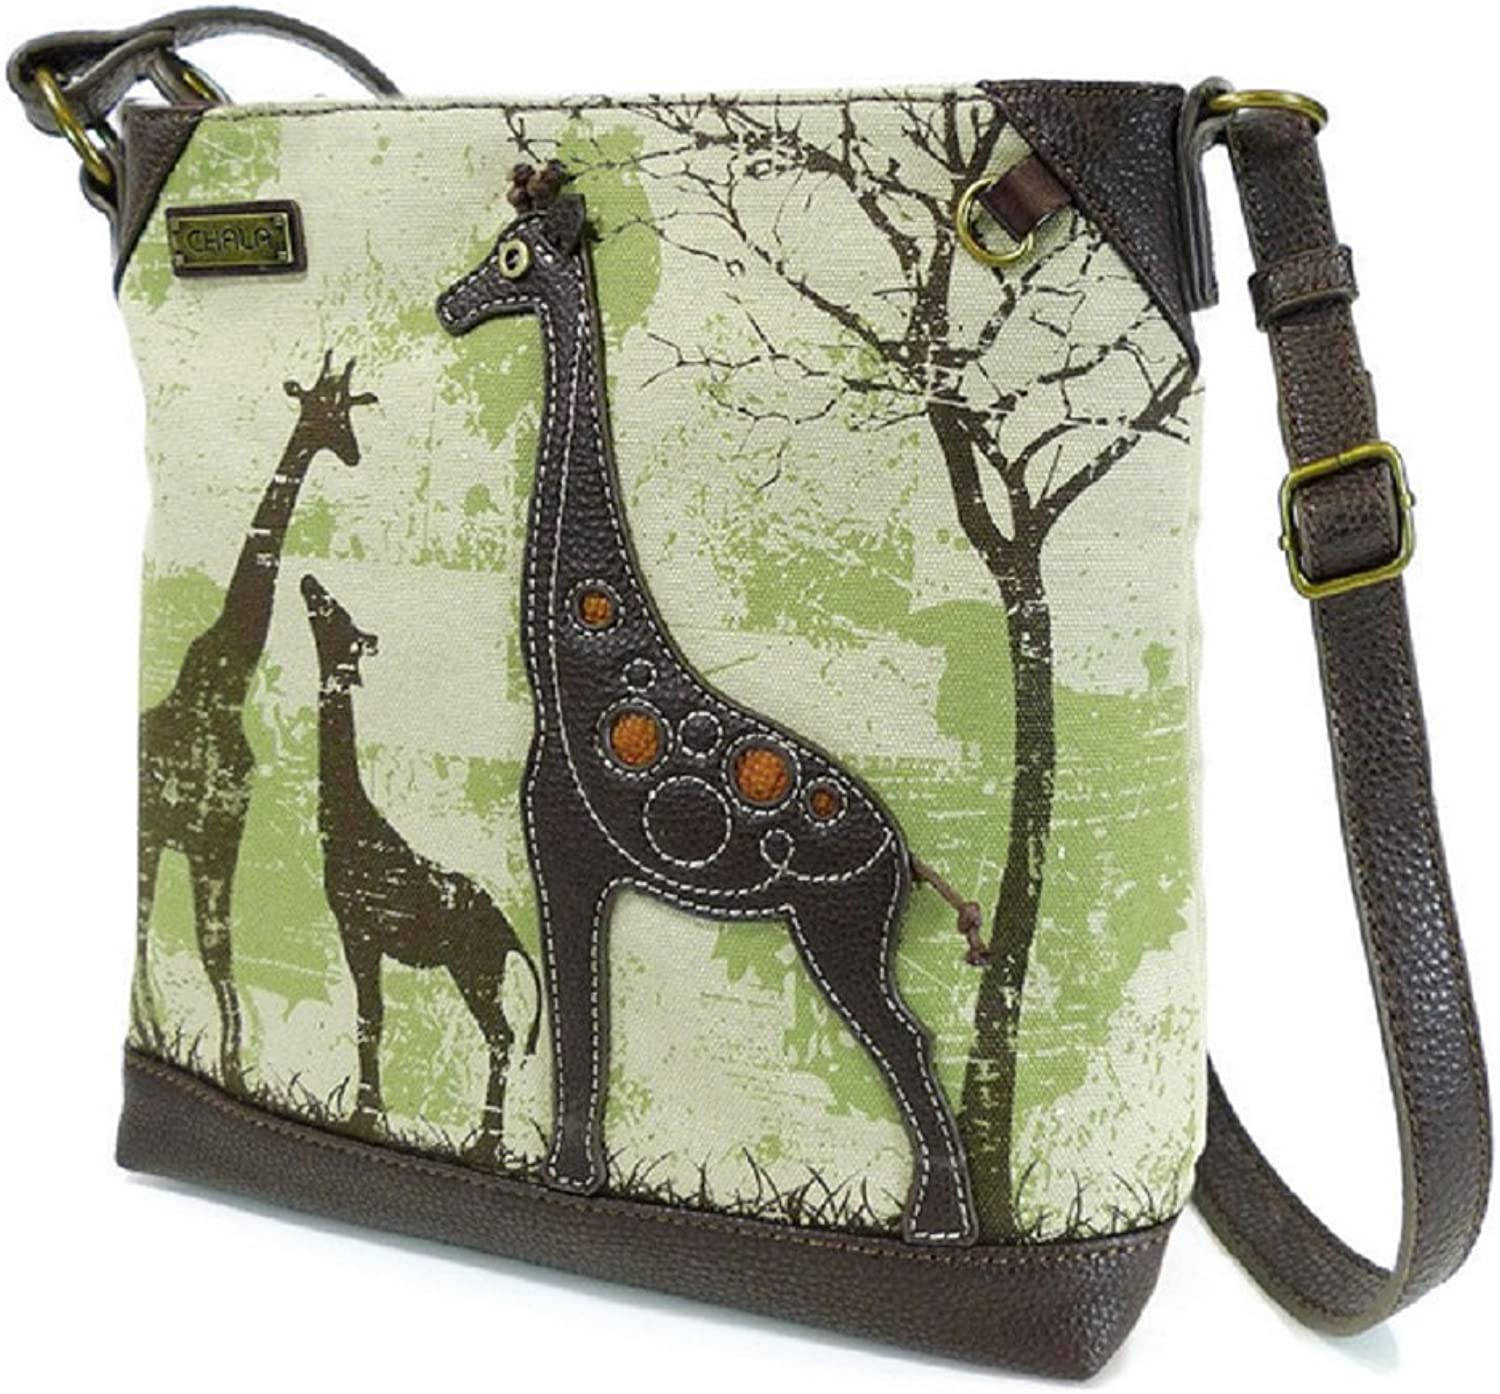 Chala Safari Canvas Crossbody  Giraffe